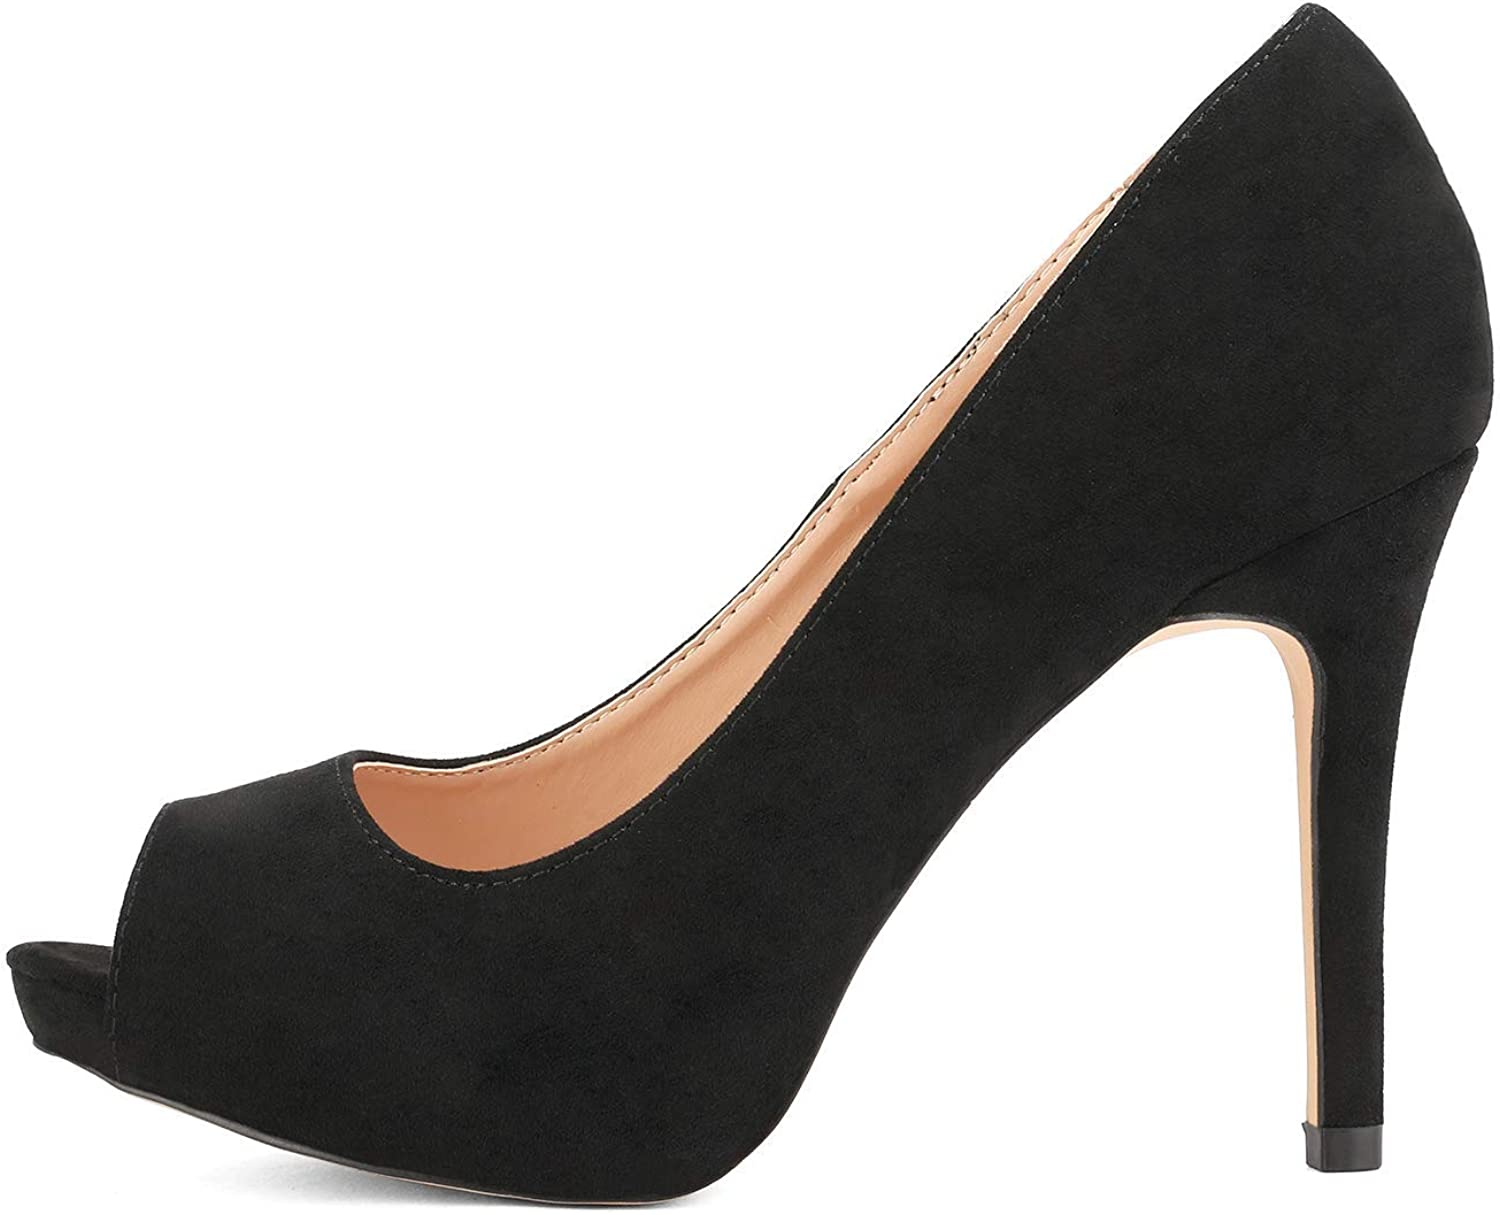 DREAM PAIRS Women's Peep Toe Stiletto High Heels Dress Court Shoes Black Suede